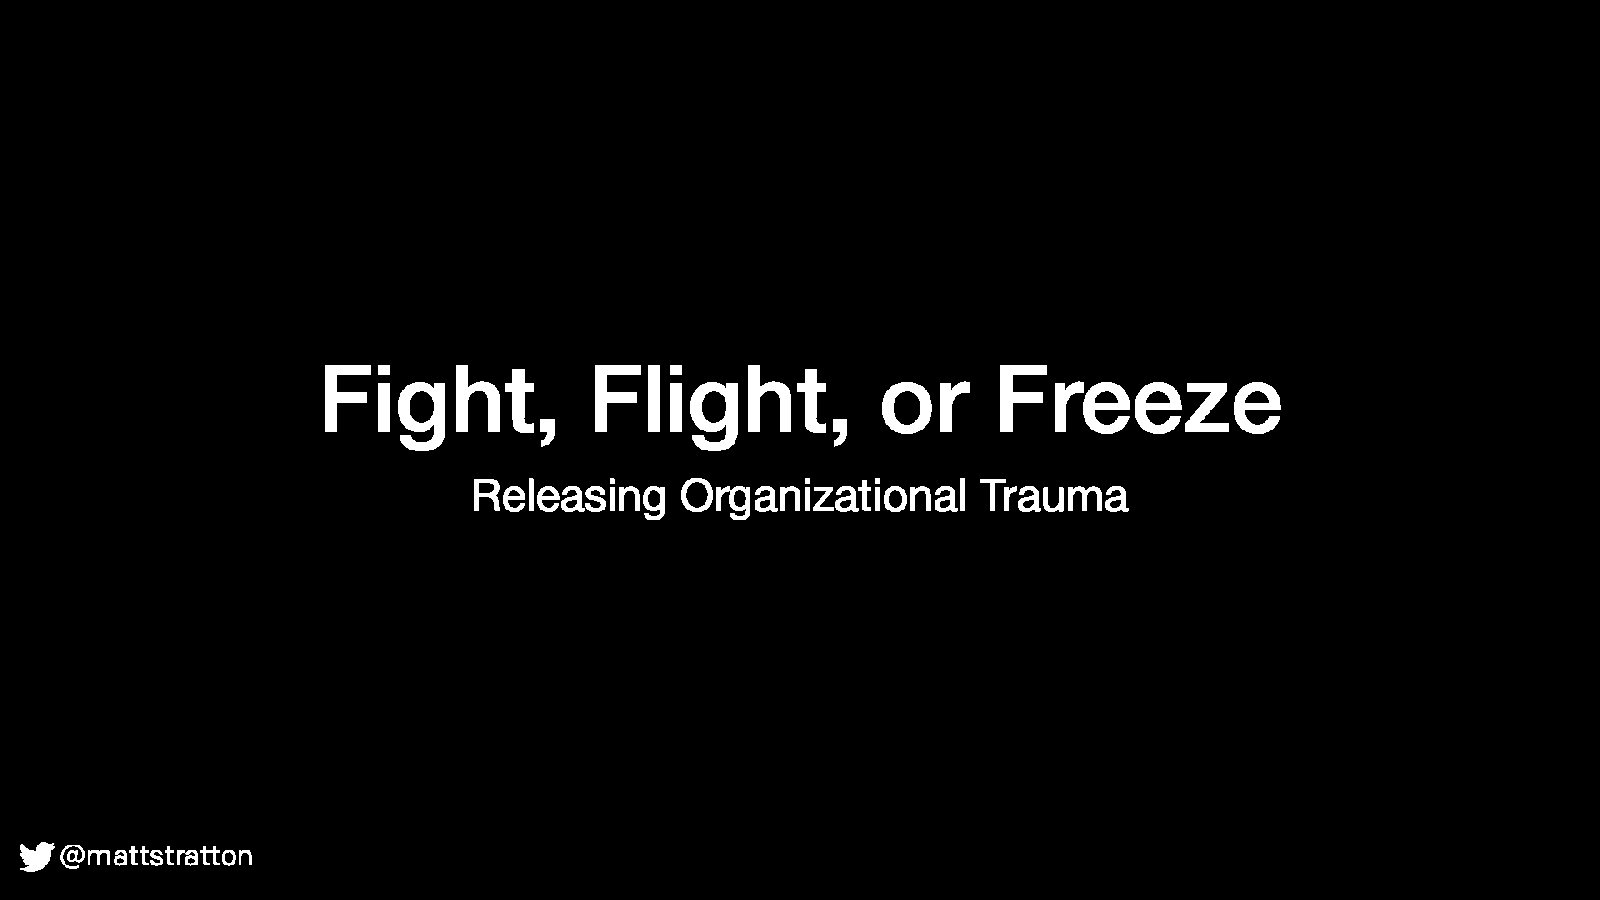 Fight, Flight, or Freeze — Releasing Organizational Trauma